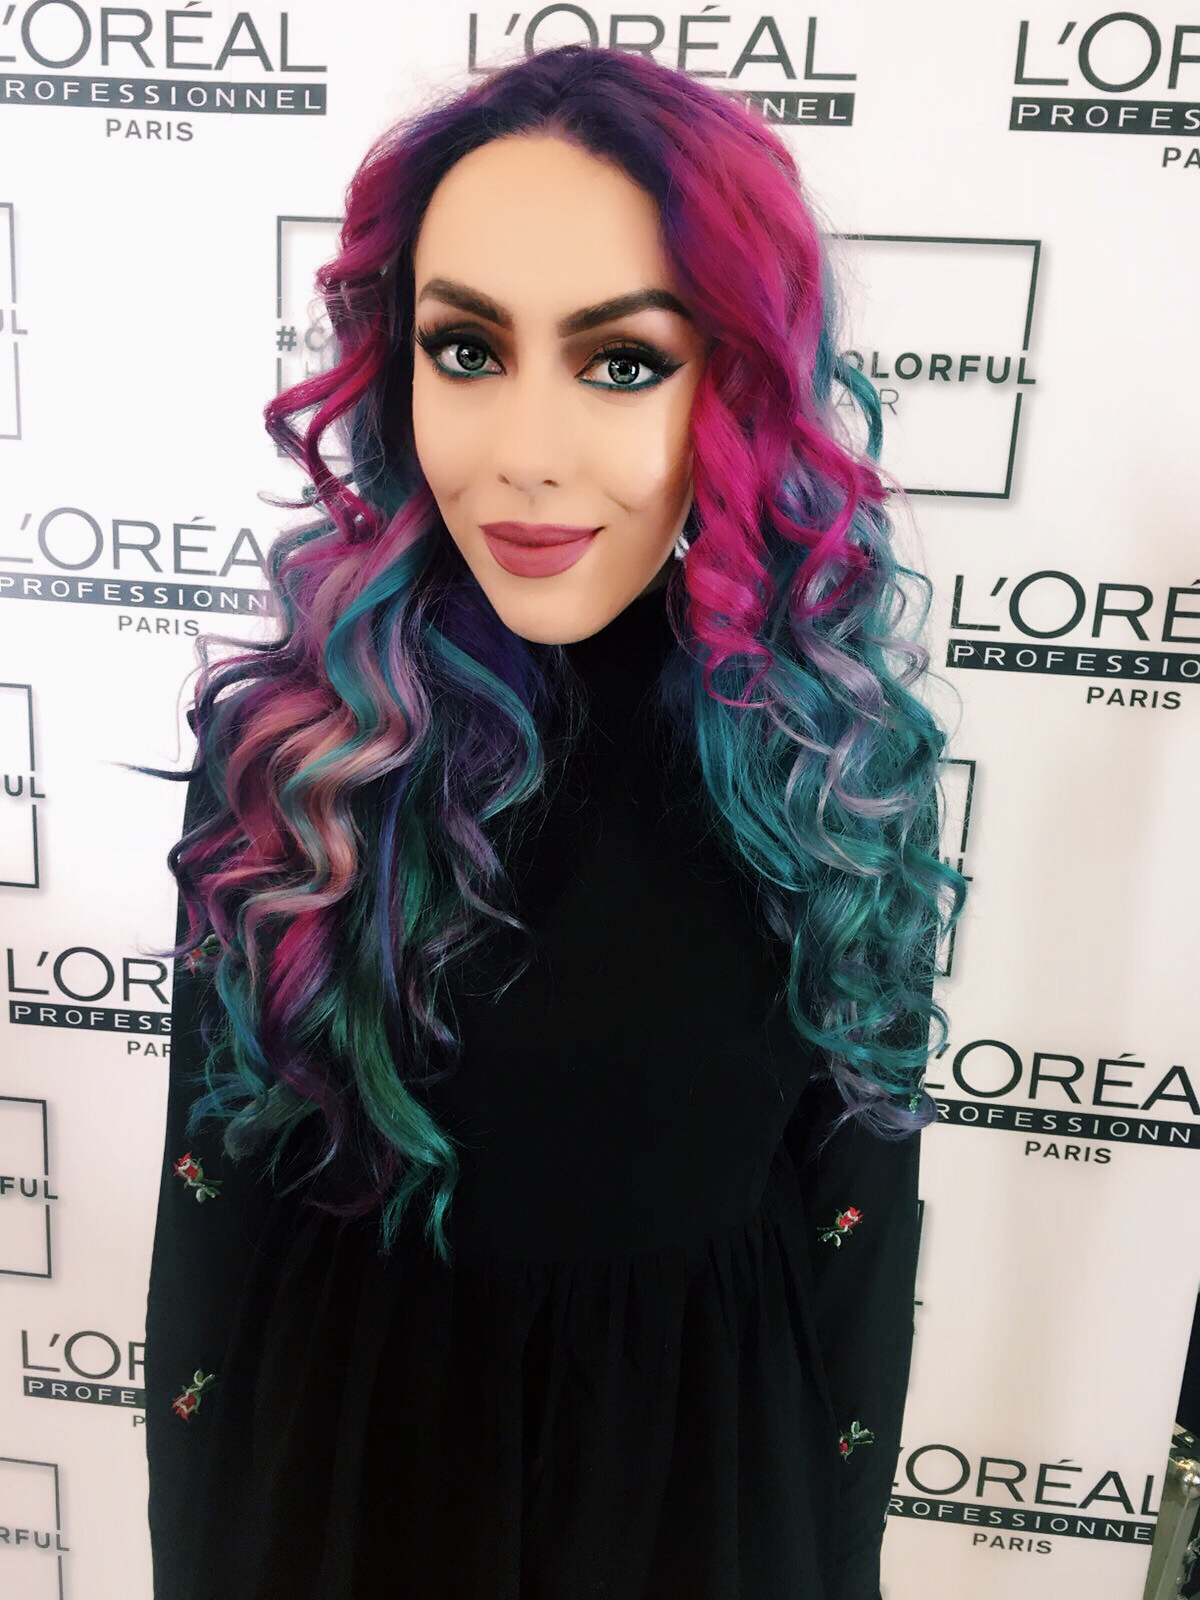 MERMAZING HAIR WITH LOREAL PRO